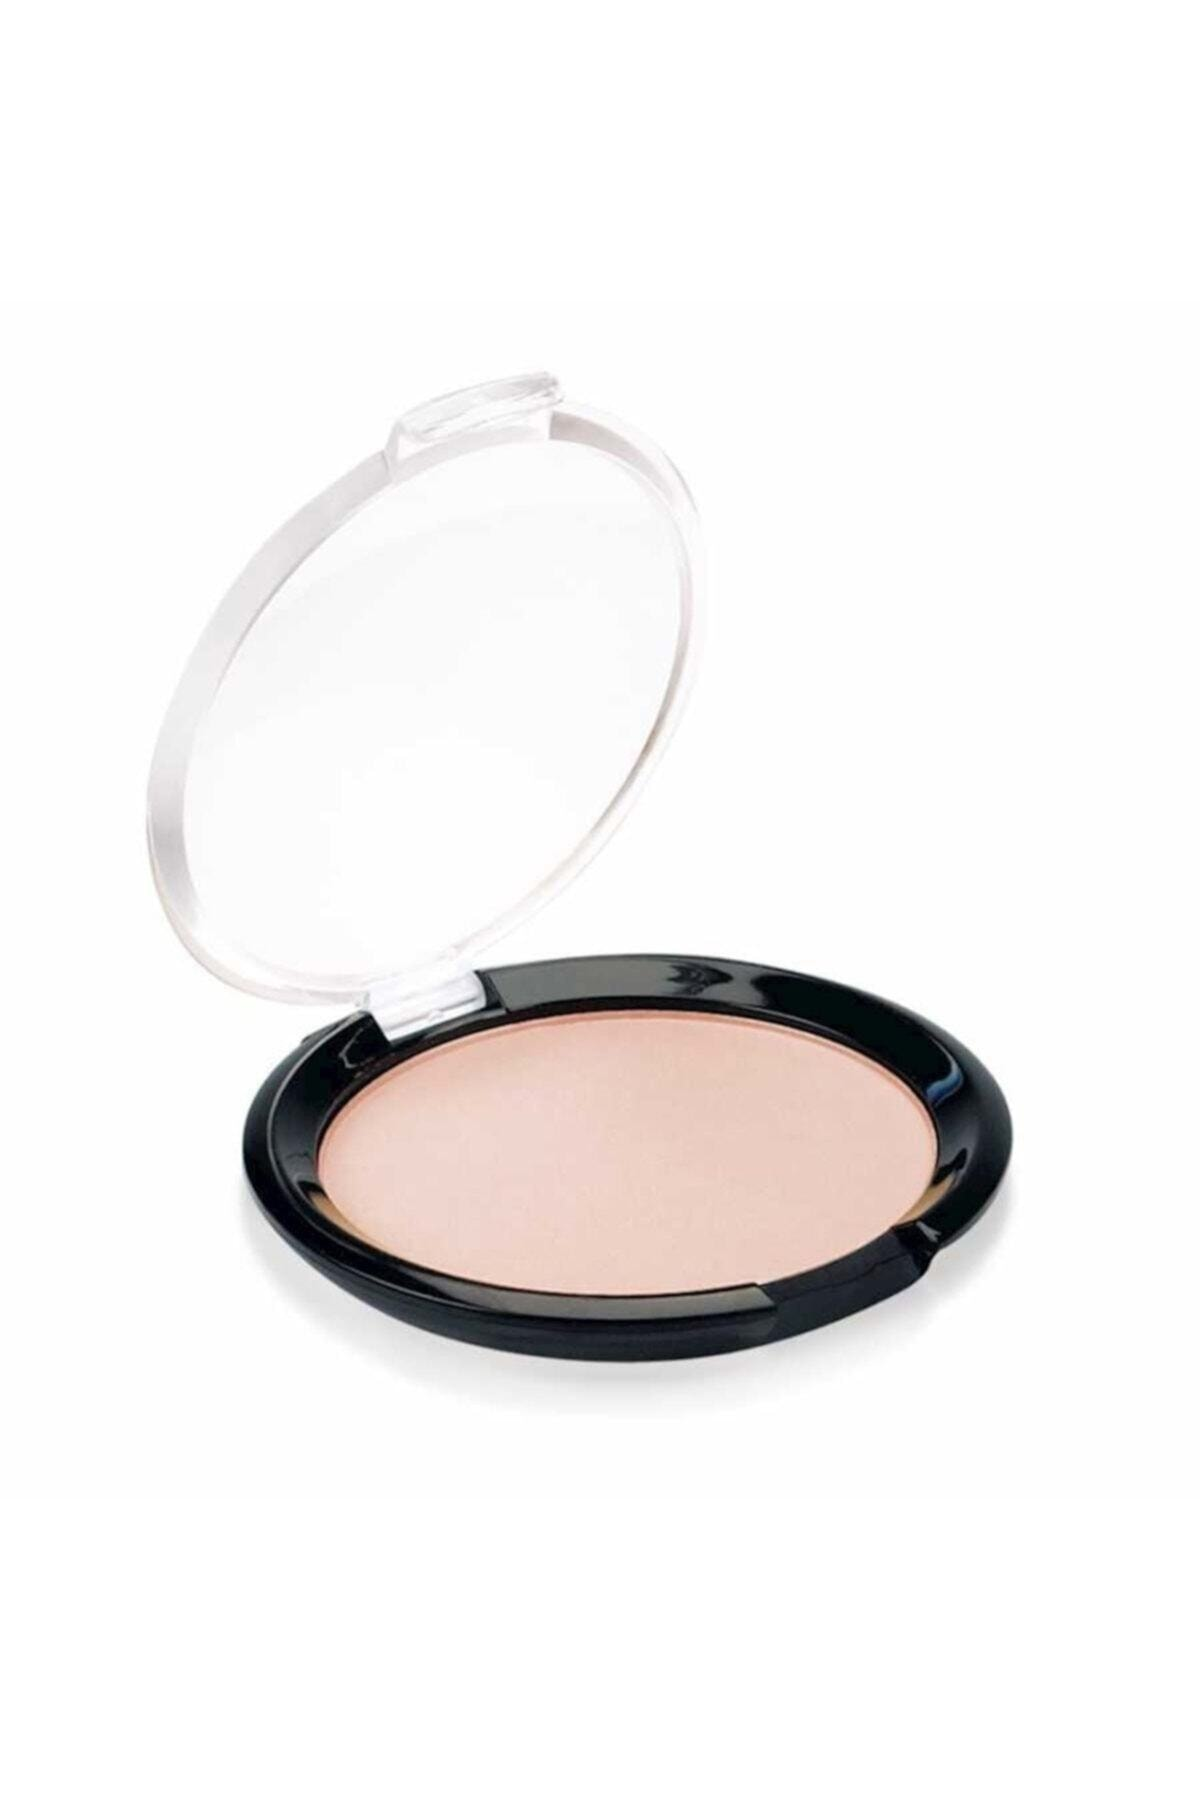 Golden Rose Pudra - Silky Touch Compact Powder No: 06 8691190115067 1